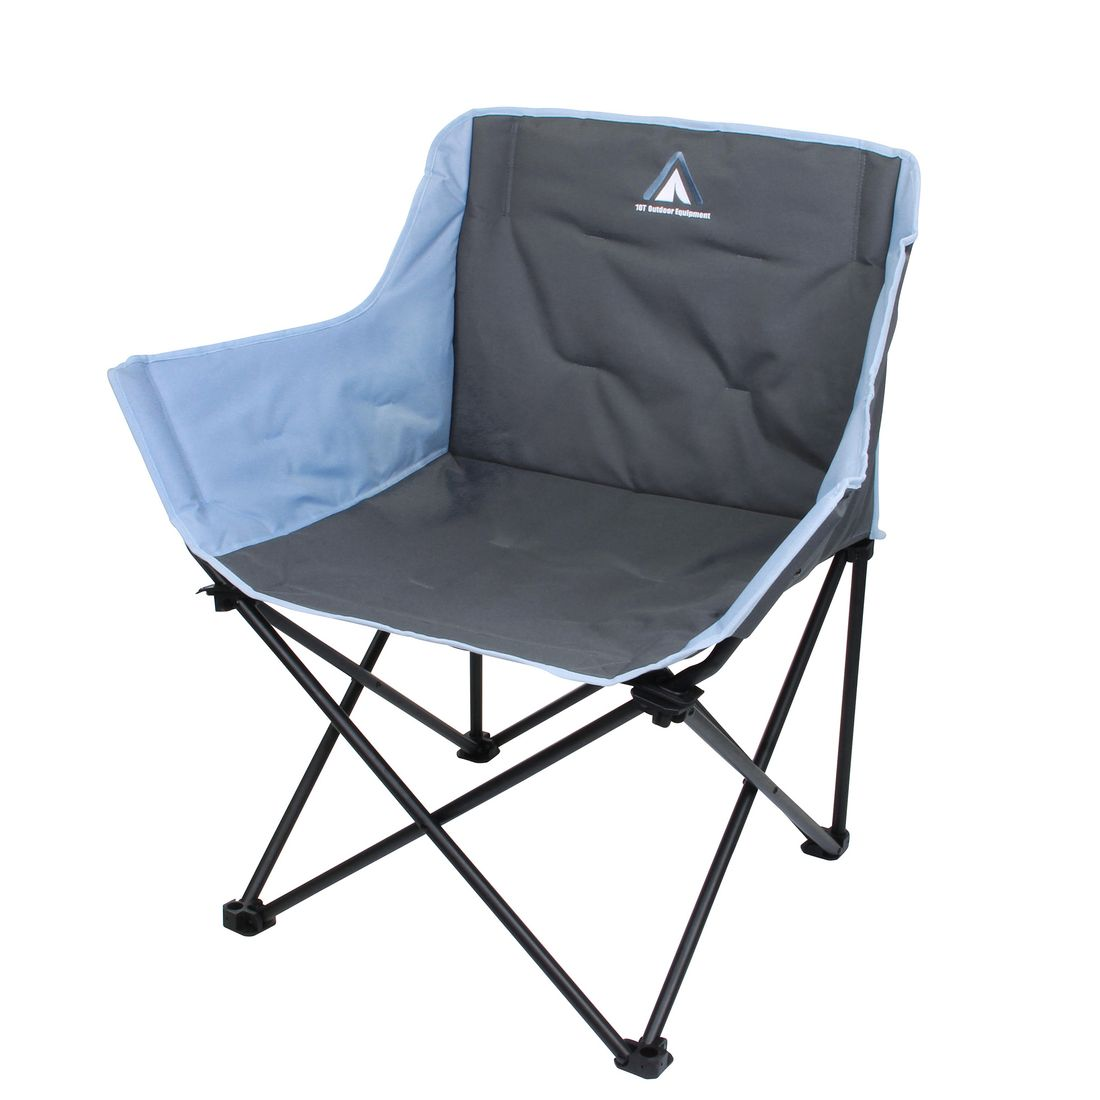 Collapsible Chair 10t Camping Chair Jace Arona Xxl Folding Chair Up To 130 Kg Chair With Cup Holder Side Pocket Outdoor Furniture Chairs Collapsible Chairs